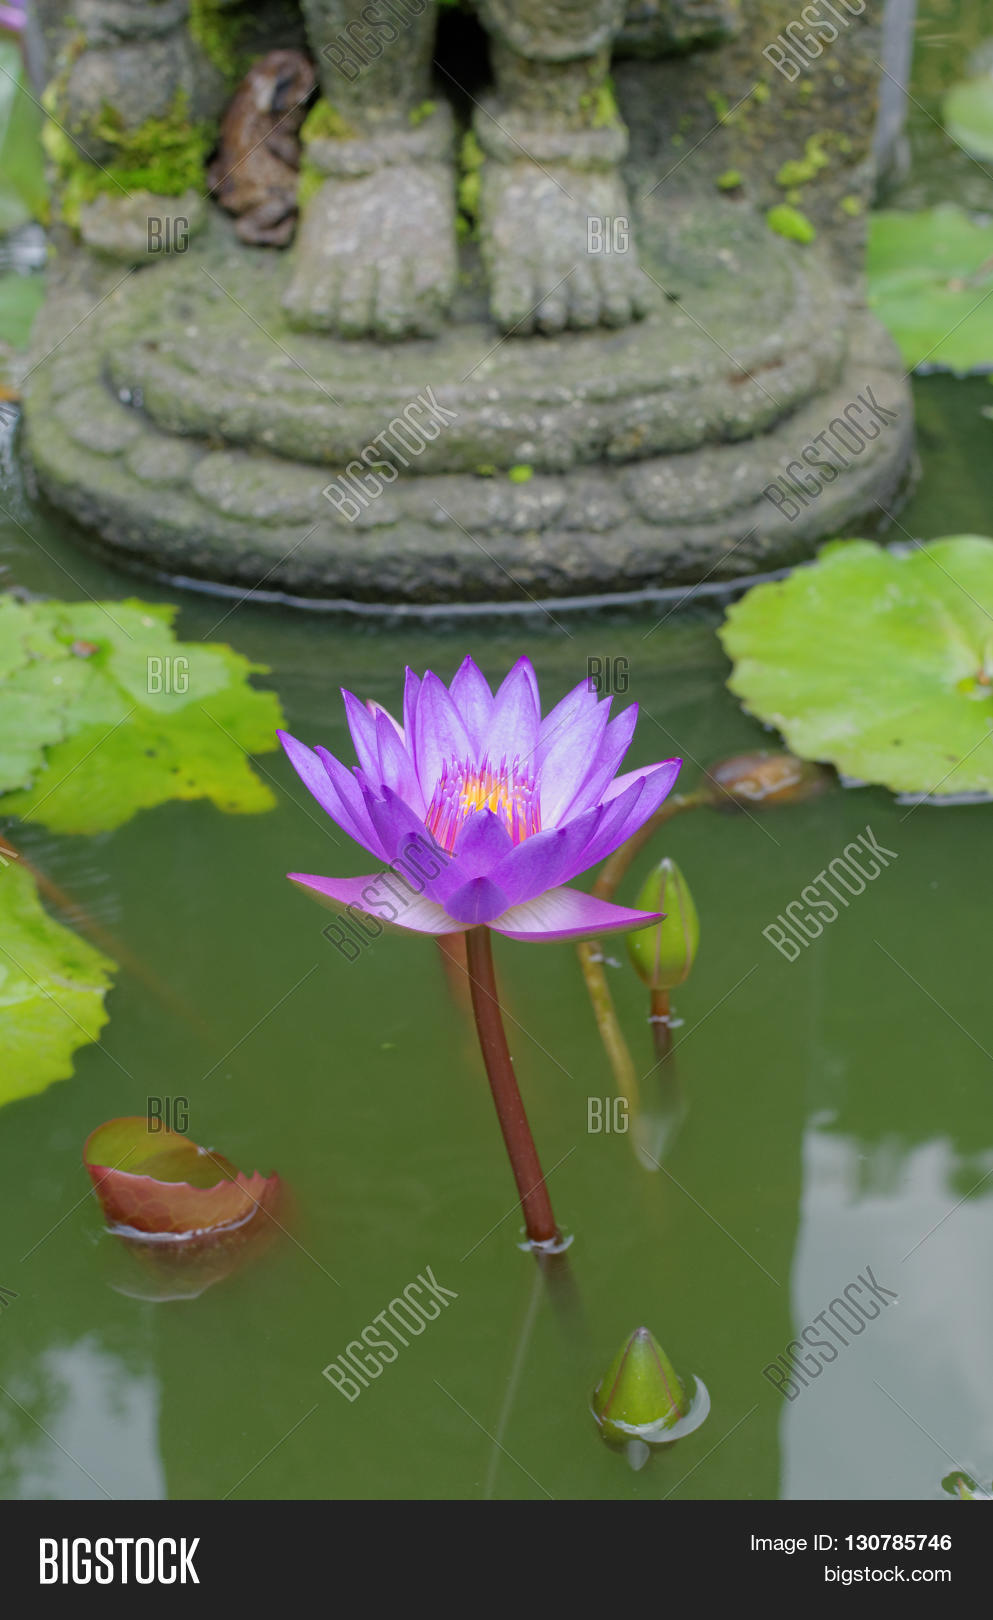 Lotus Flower Under Image Photo Free Trial Bigstock